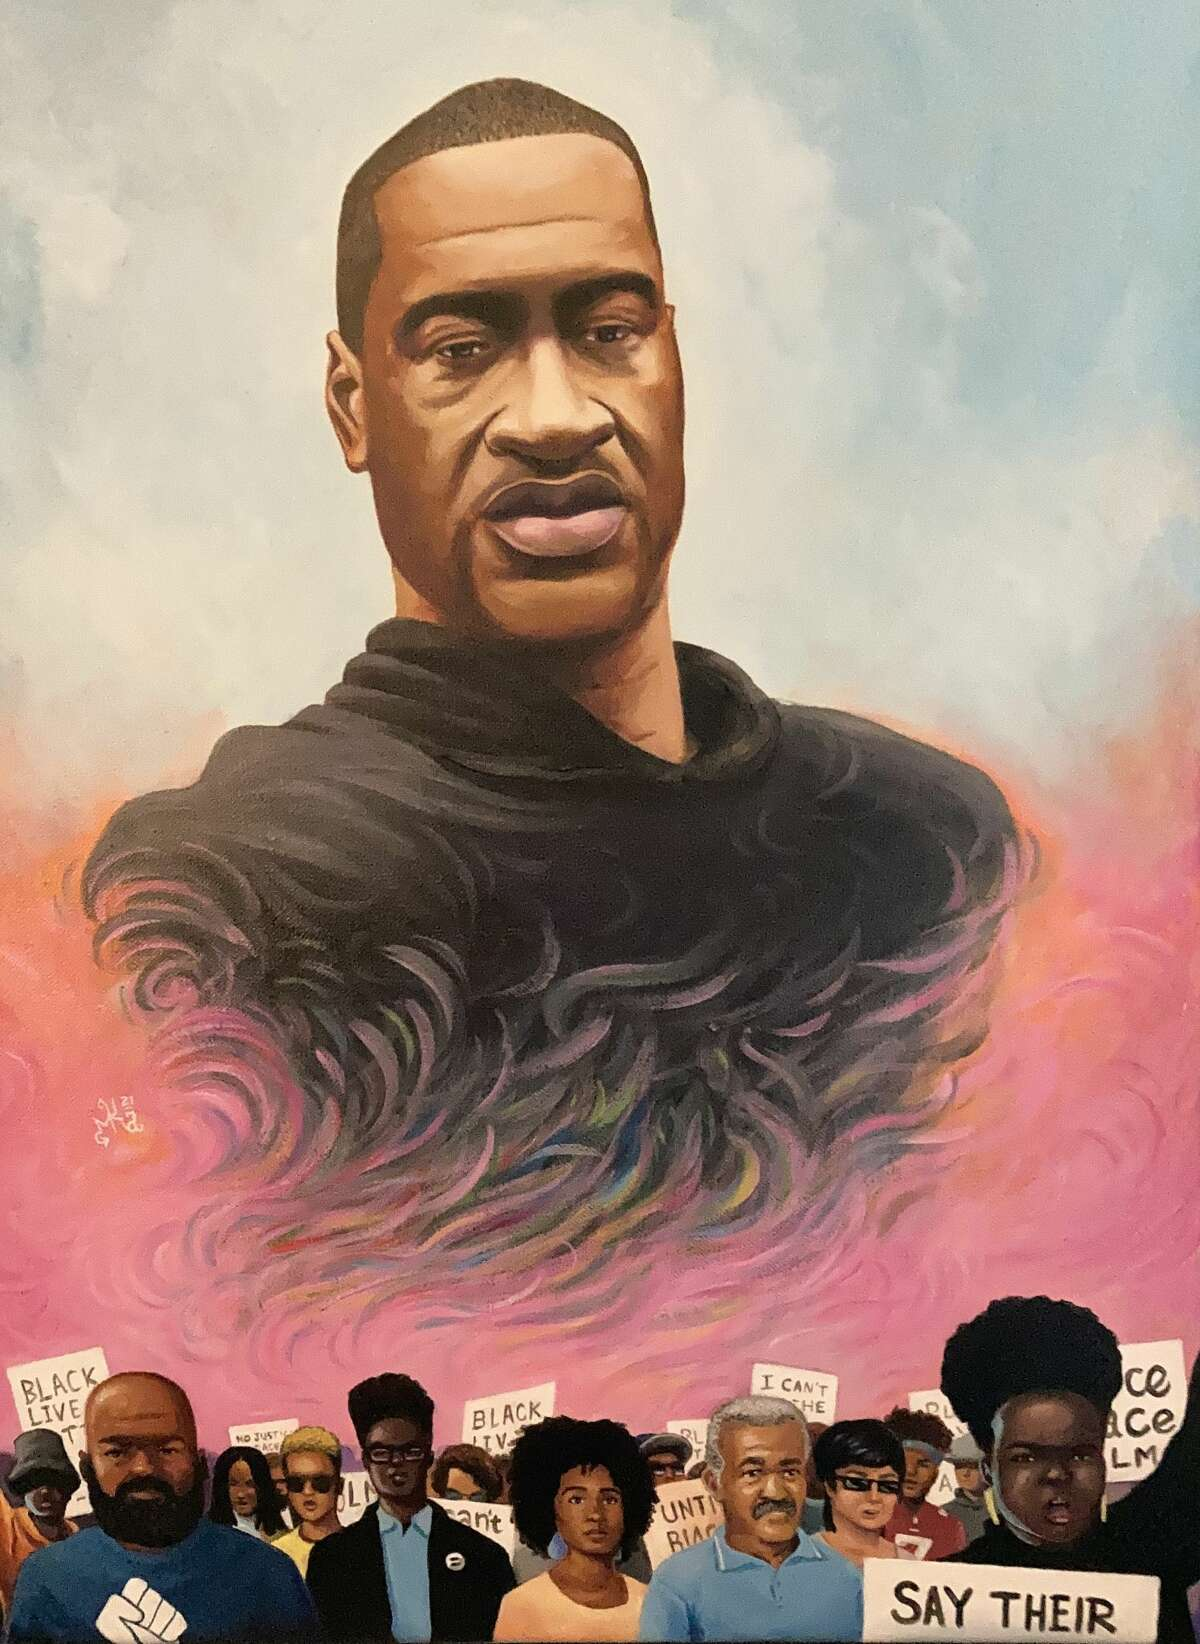 Marcus Anderson's portrait of George Floyd was the centerpiece for a memorial service planned by Ann Townsend of Greenwich to mark the anniversary of Floyd's murder.